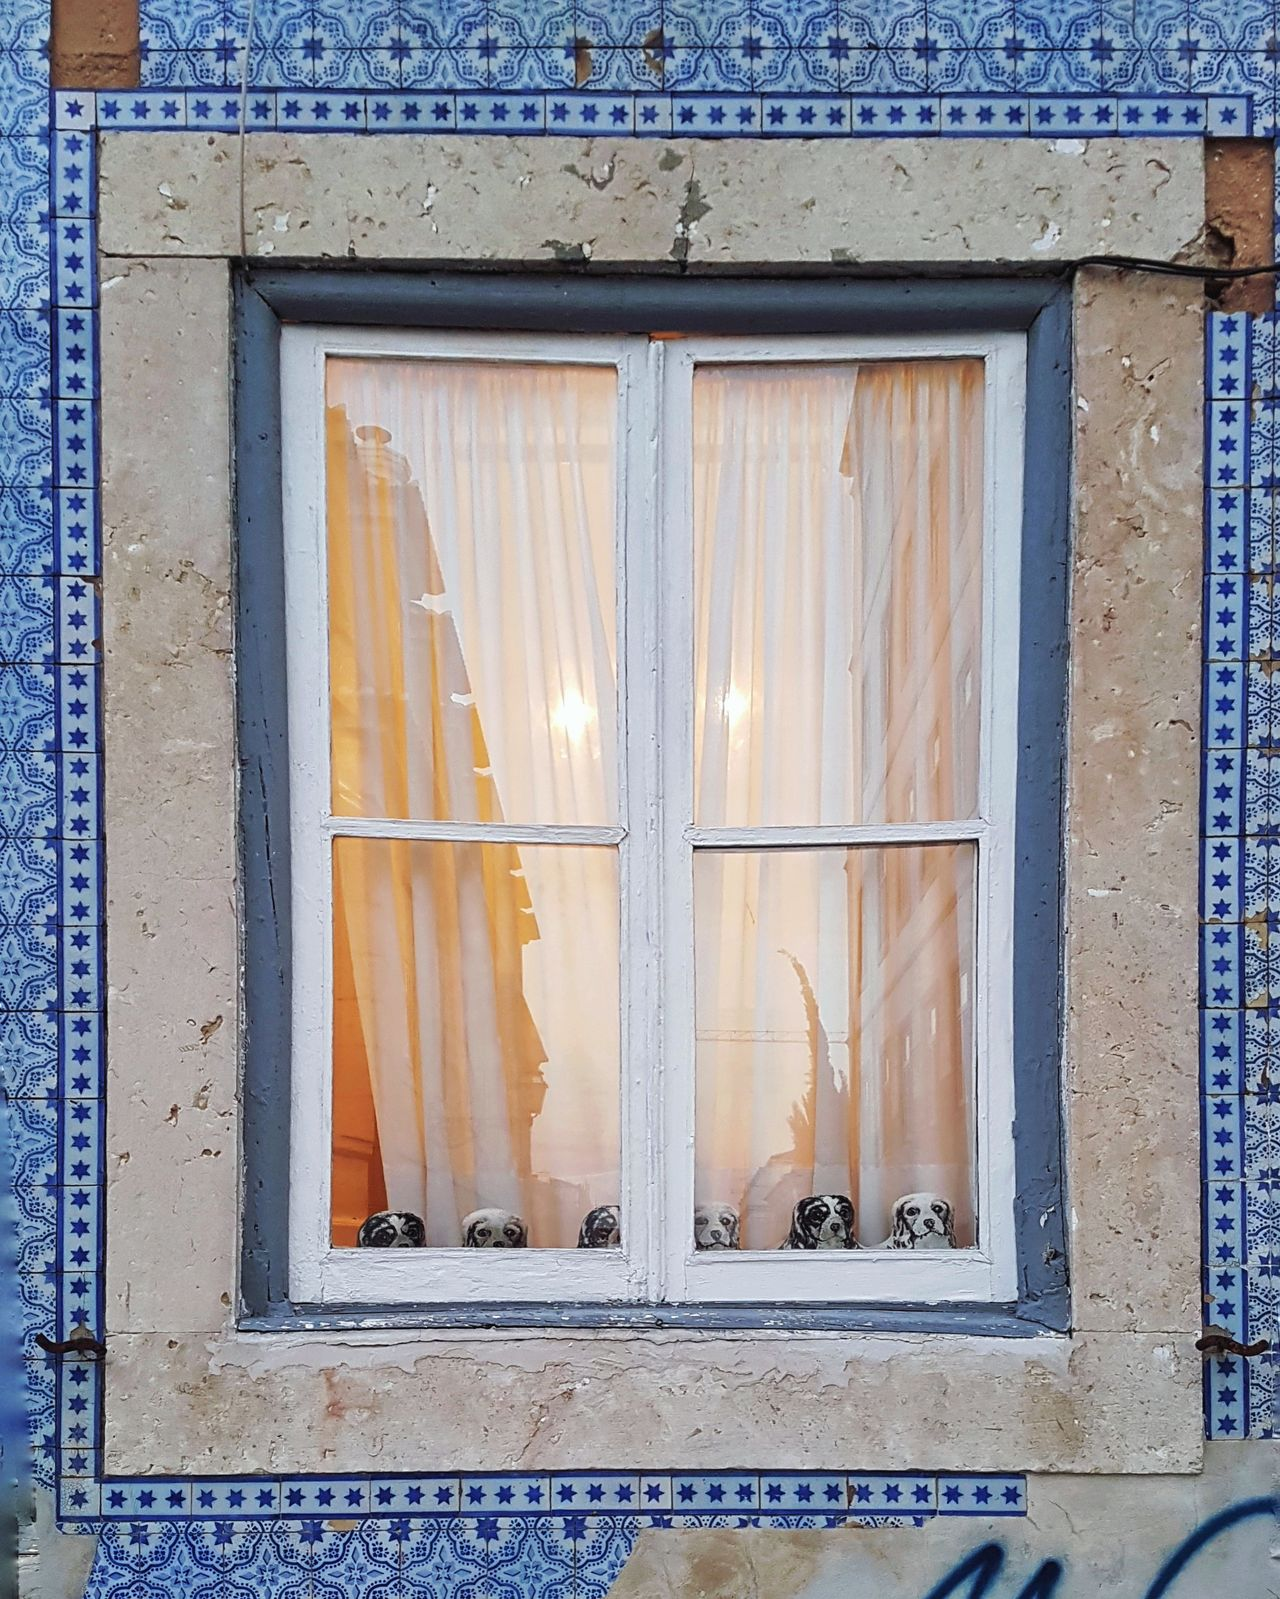 Window Architecture Rustic Close-up Minimalist Minimalism Windows_aroundtheworld Pattern Art Is Everywhere EyeEmNewHere WeekOnEyeEm Street Photography Streetphotography Blue Color Azulejosportugueses Out Of The Box Waiting Cozy Place Cozy Atmosphere Lisboa, Portugal